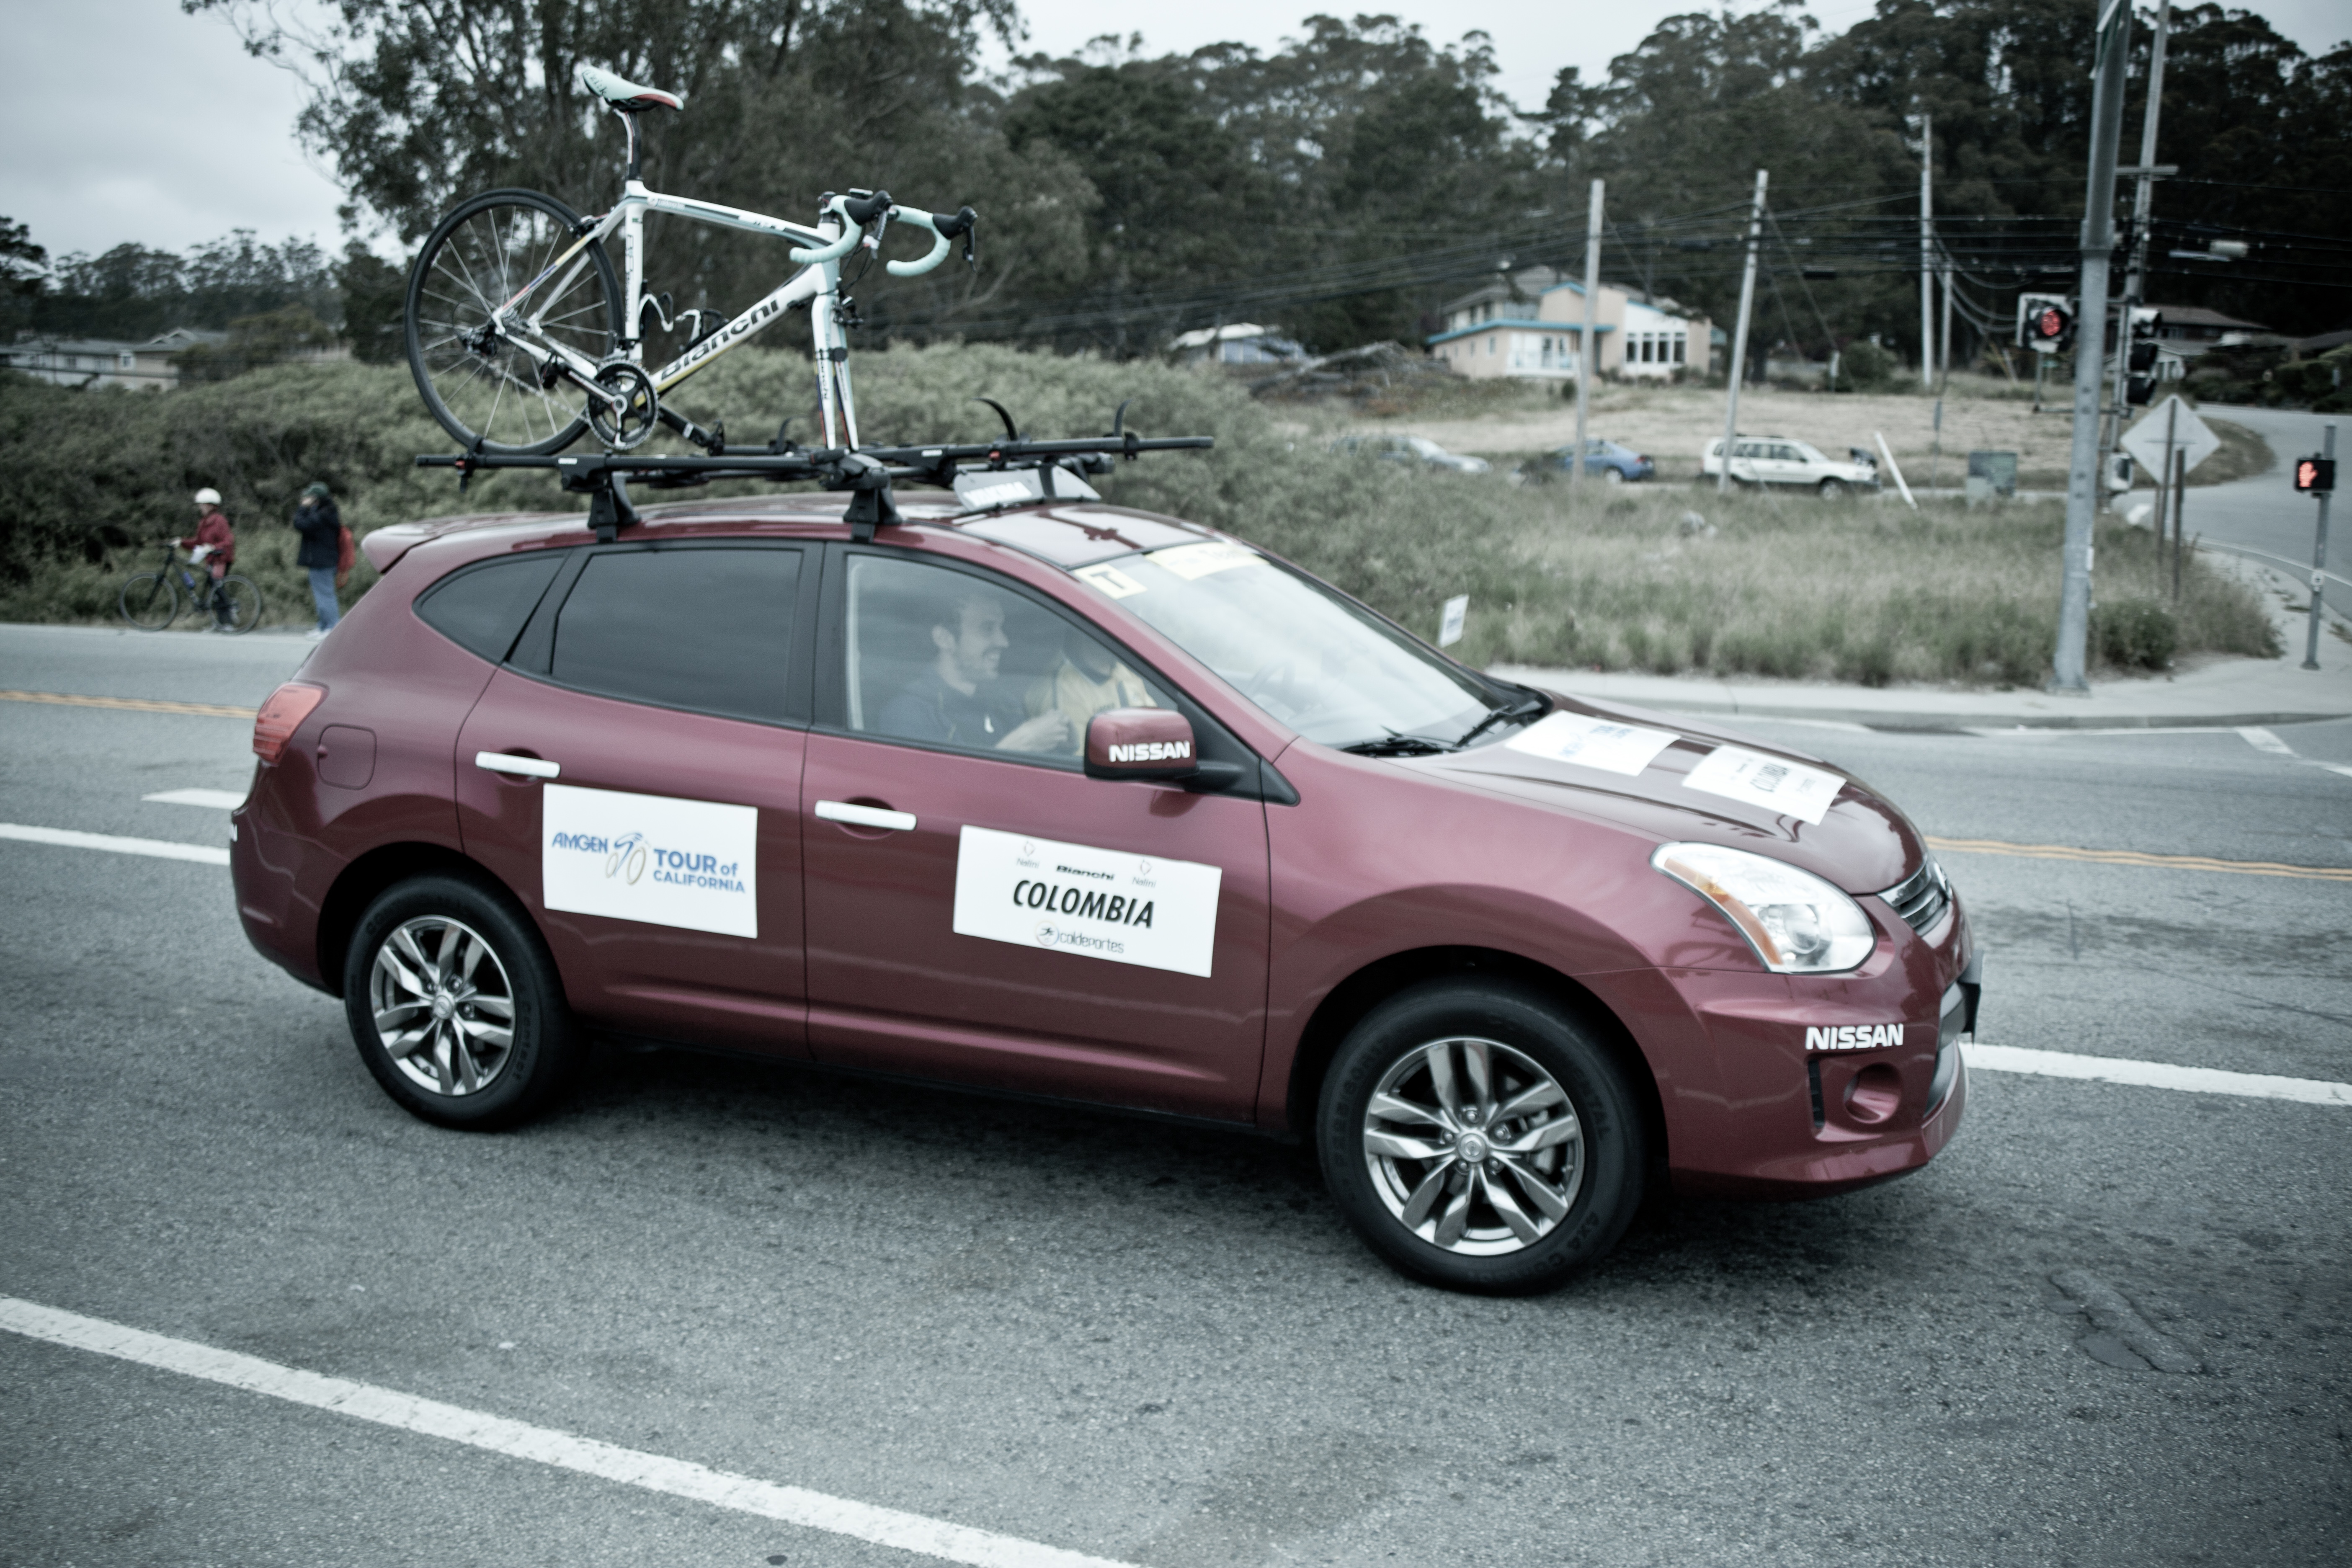 Photo: Columbia Team Car before the sprint